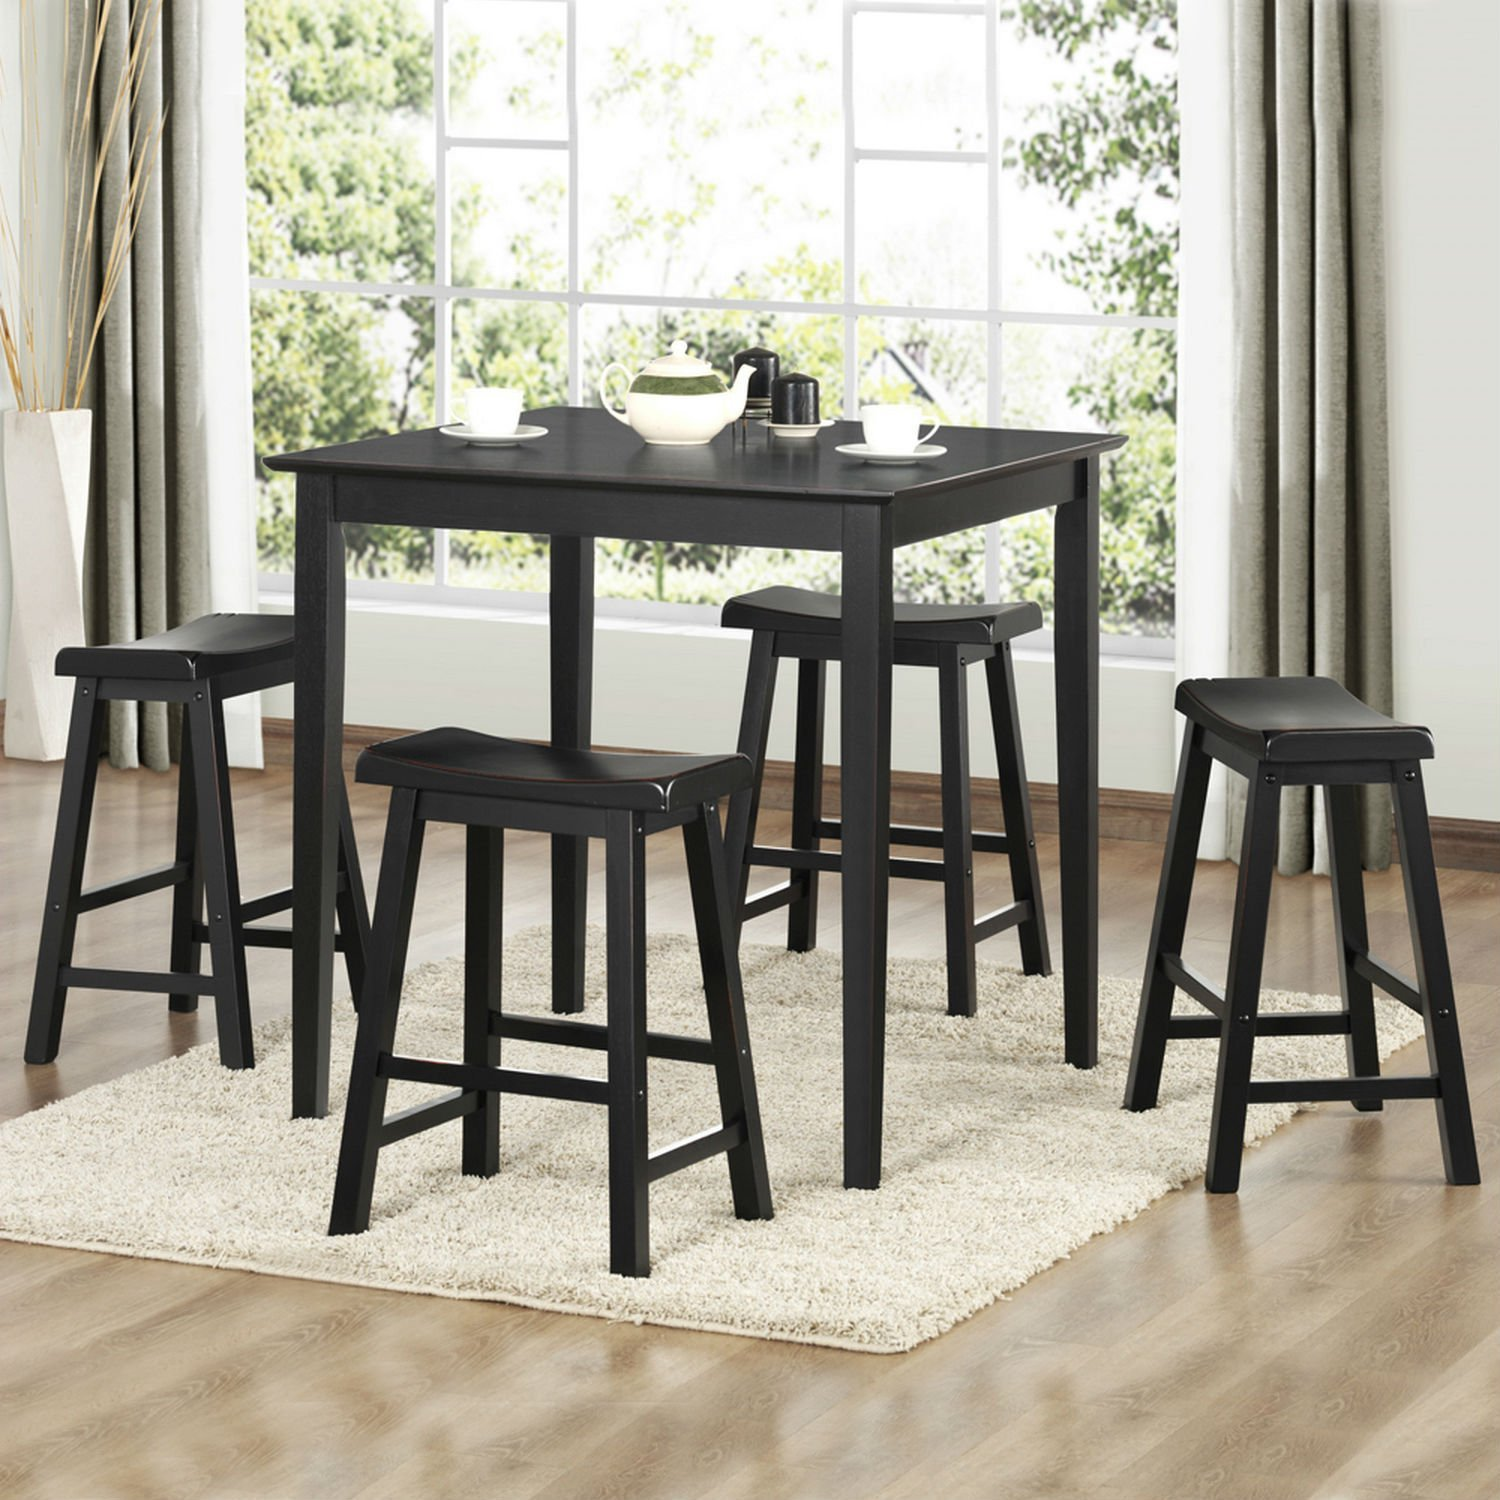 Astounding Buy 5 Piece Pub Set Comes With 4 Saddle Stool Bar Seats And Lamtechconsult Wood Chair Design Ideas Lamtechconsultcom